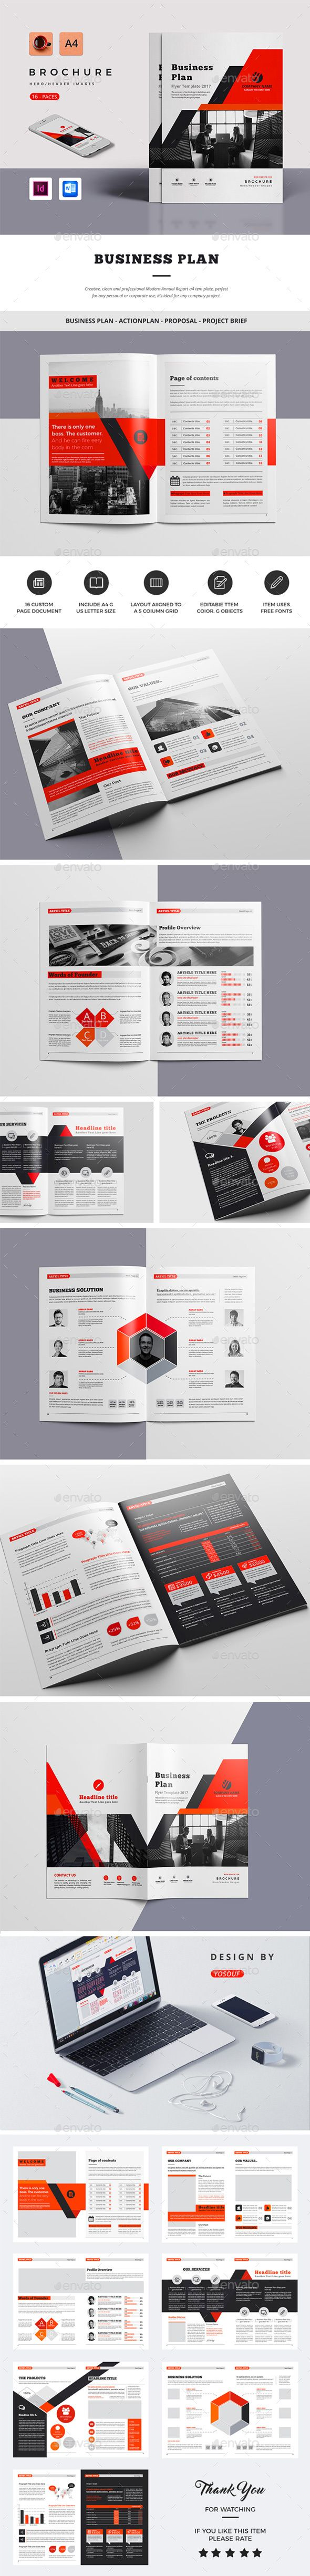 Business Plan — InDesign INDD #trendy • Download ➝ https://graphicriver.net/item/business-plan/19726717?ref=pxcr